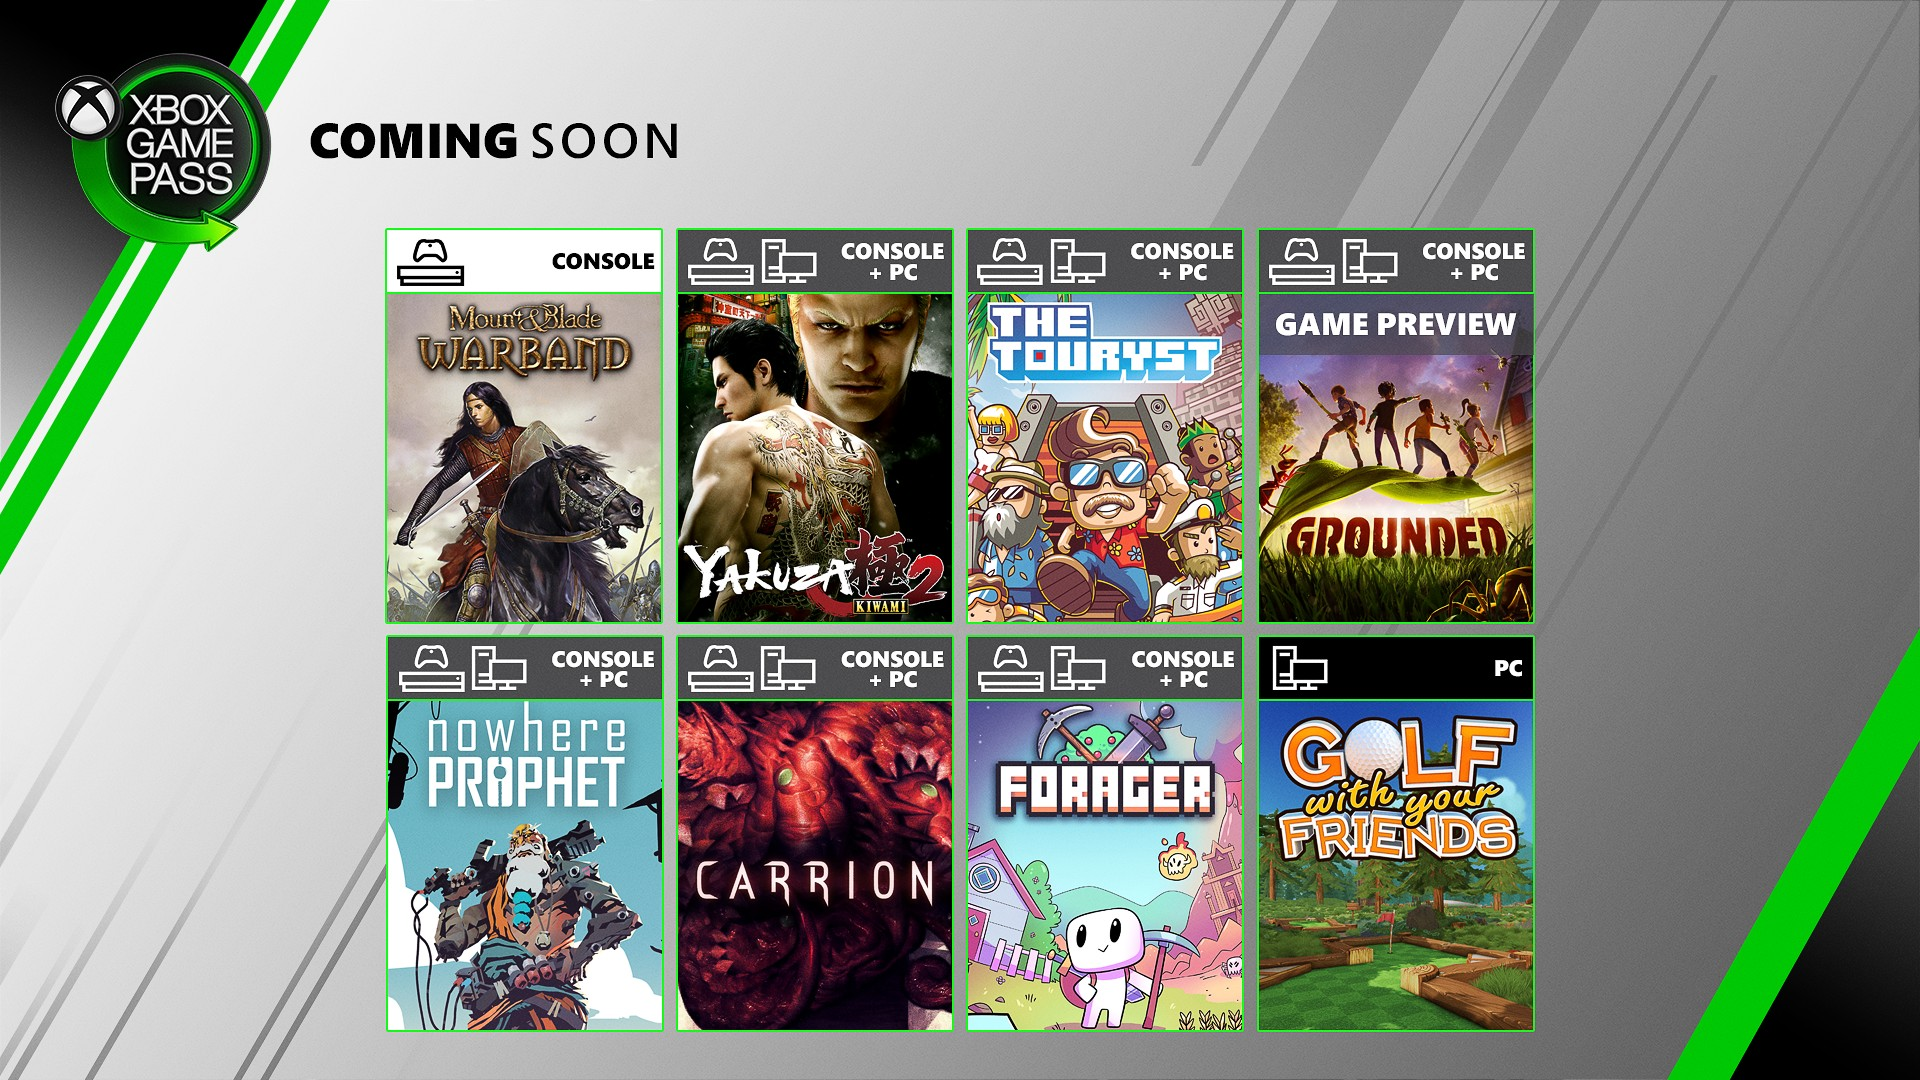 Xbox Game Pass Adds Forager Carrion Grounded The Touryst Yakuza Kiwami 2 And More In Late July Gematsu